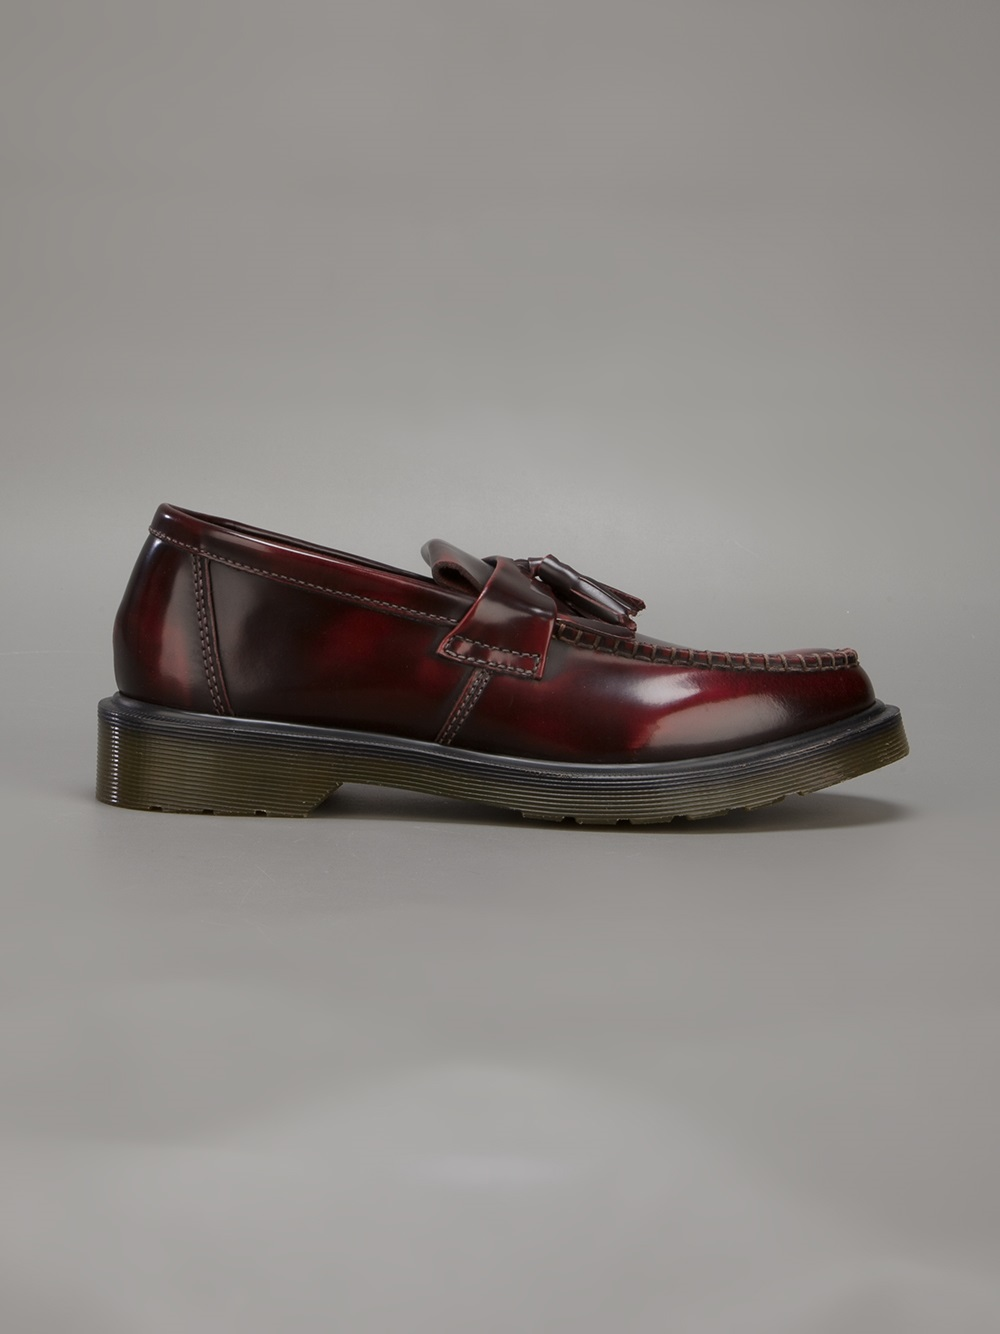 Dr. Martens Core Adrian Loafer in Burgundy (Red) for Men